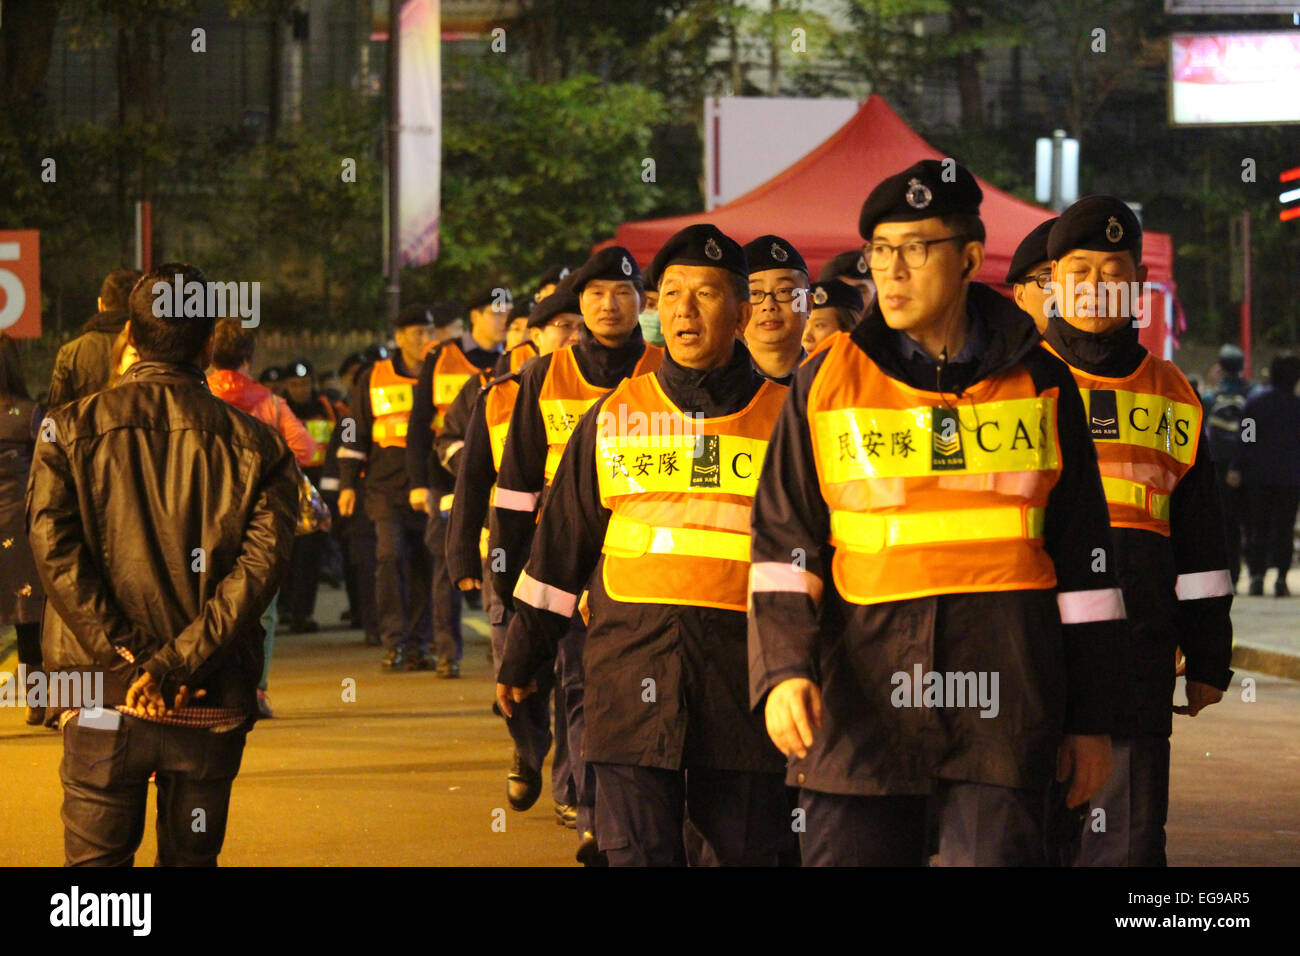 Hong Kong, China. 19th Feb, 2015. Numerous Civil Aid Service (CAS) personnel walk down street during parade in Tsim - Stock Image